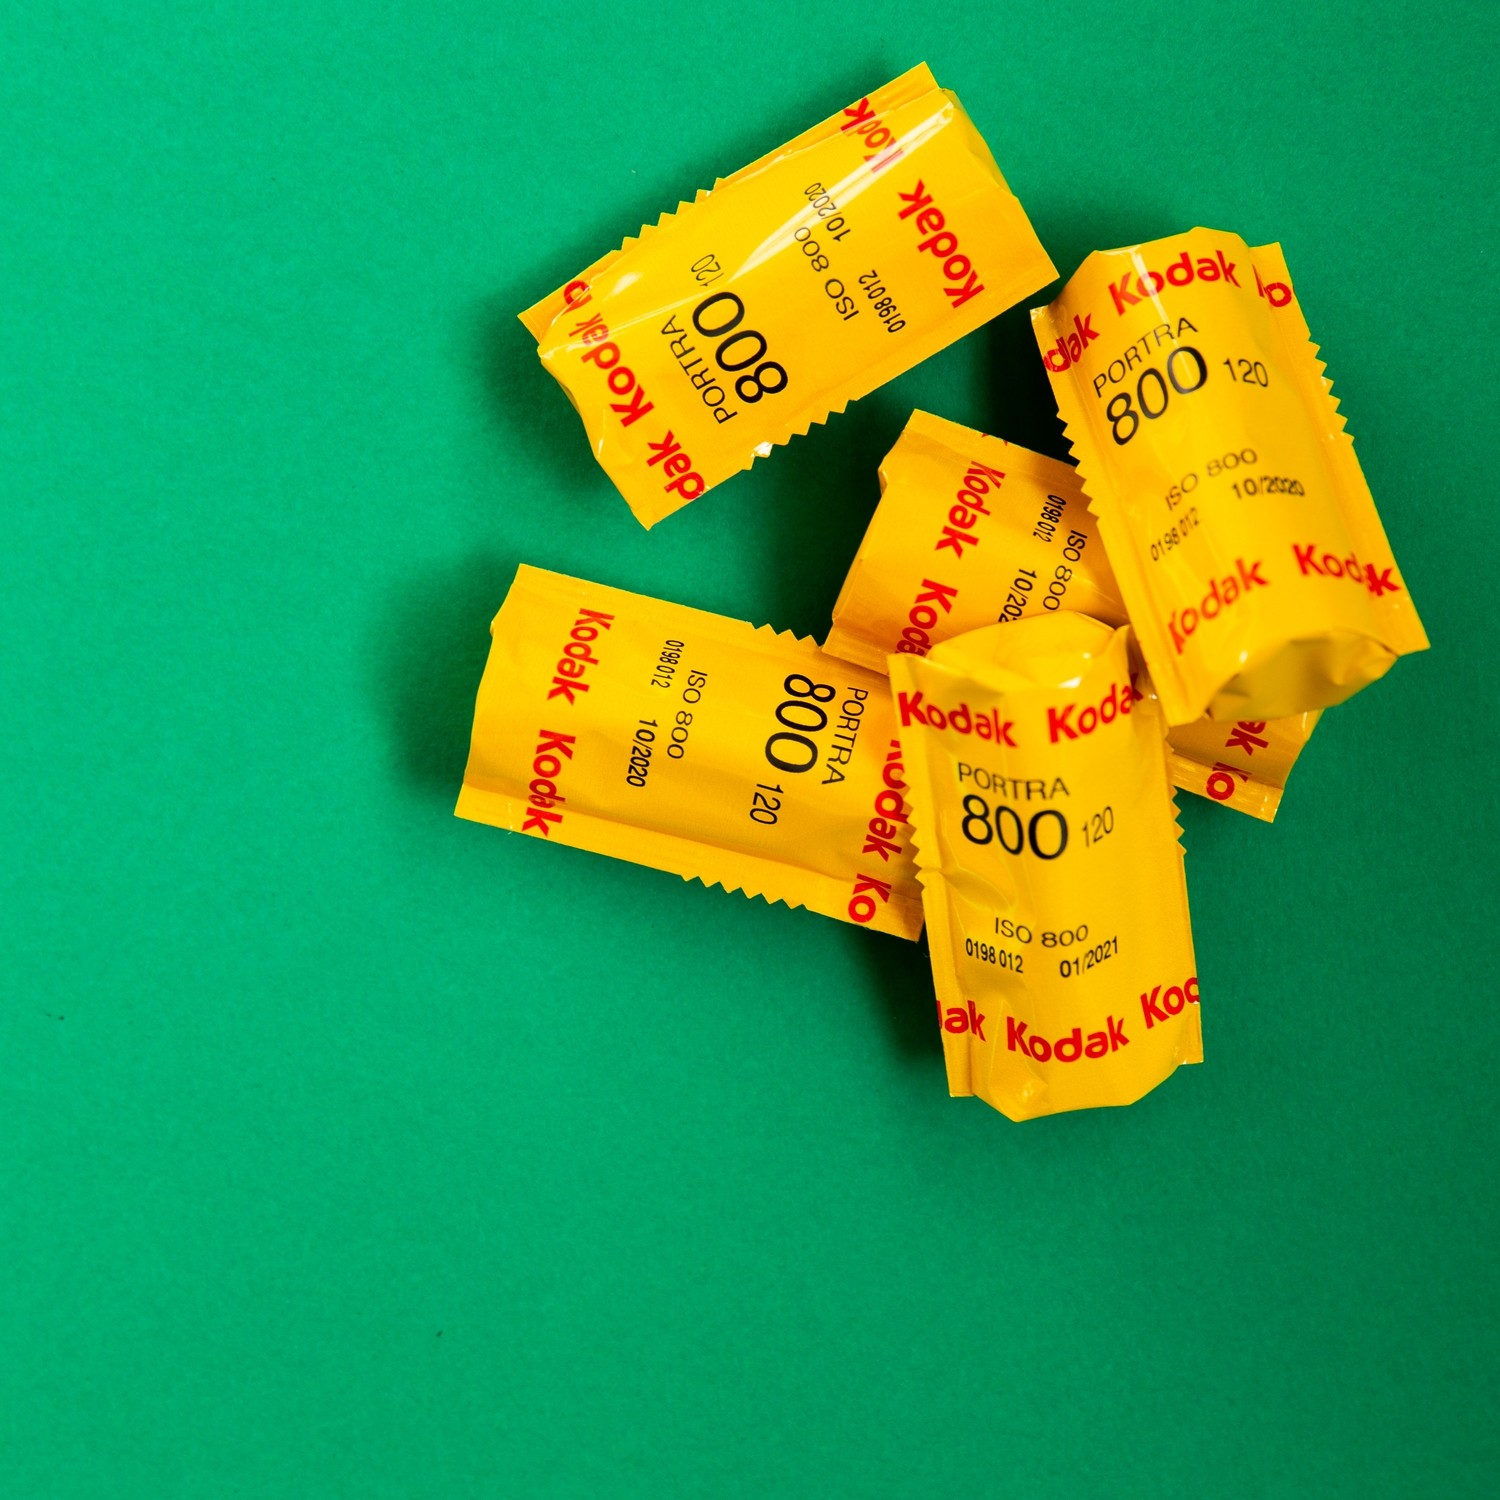 Kodak Portra 800 120 - From $8.50 a Roll!